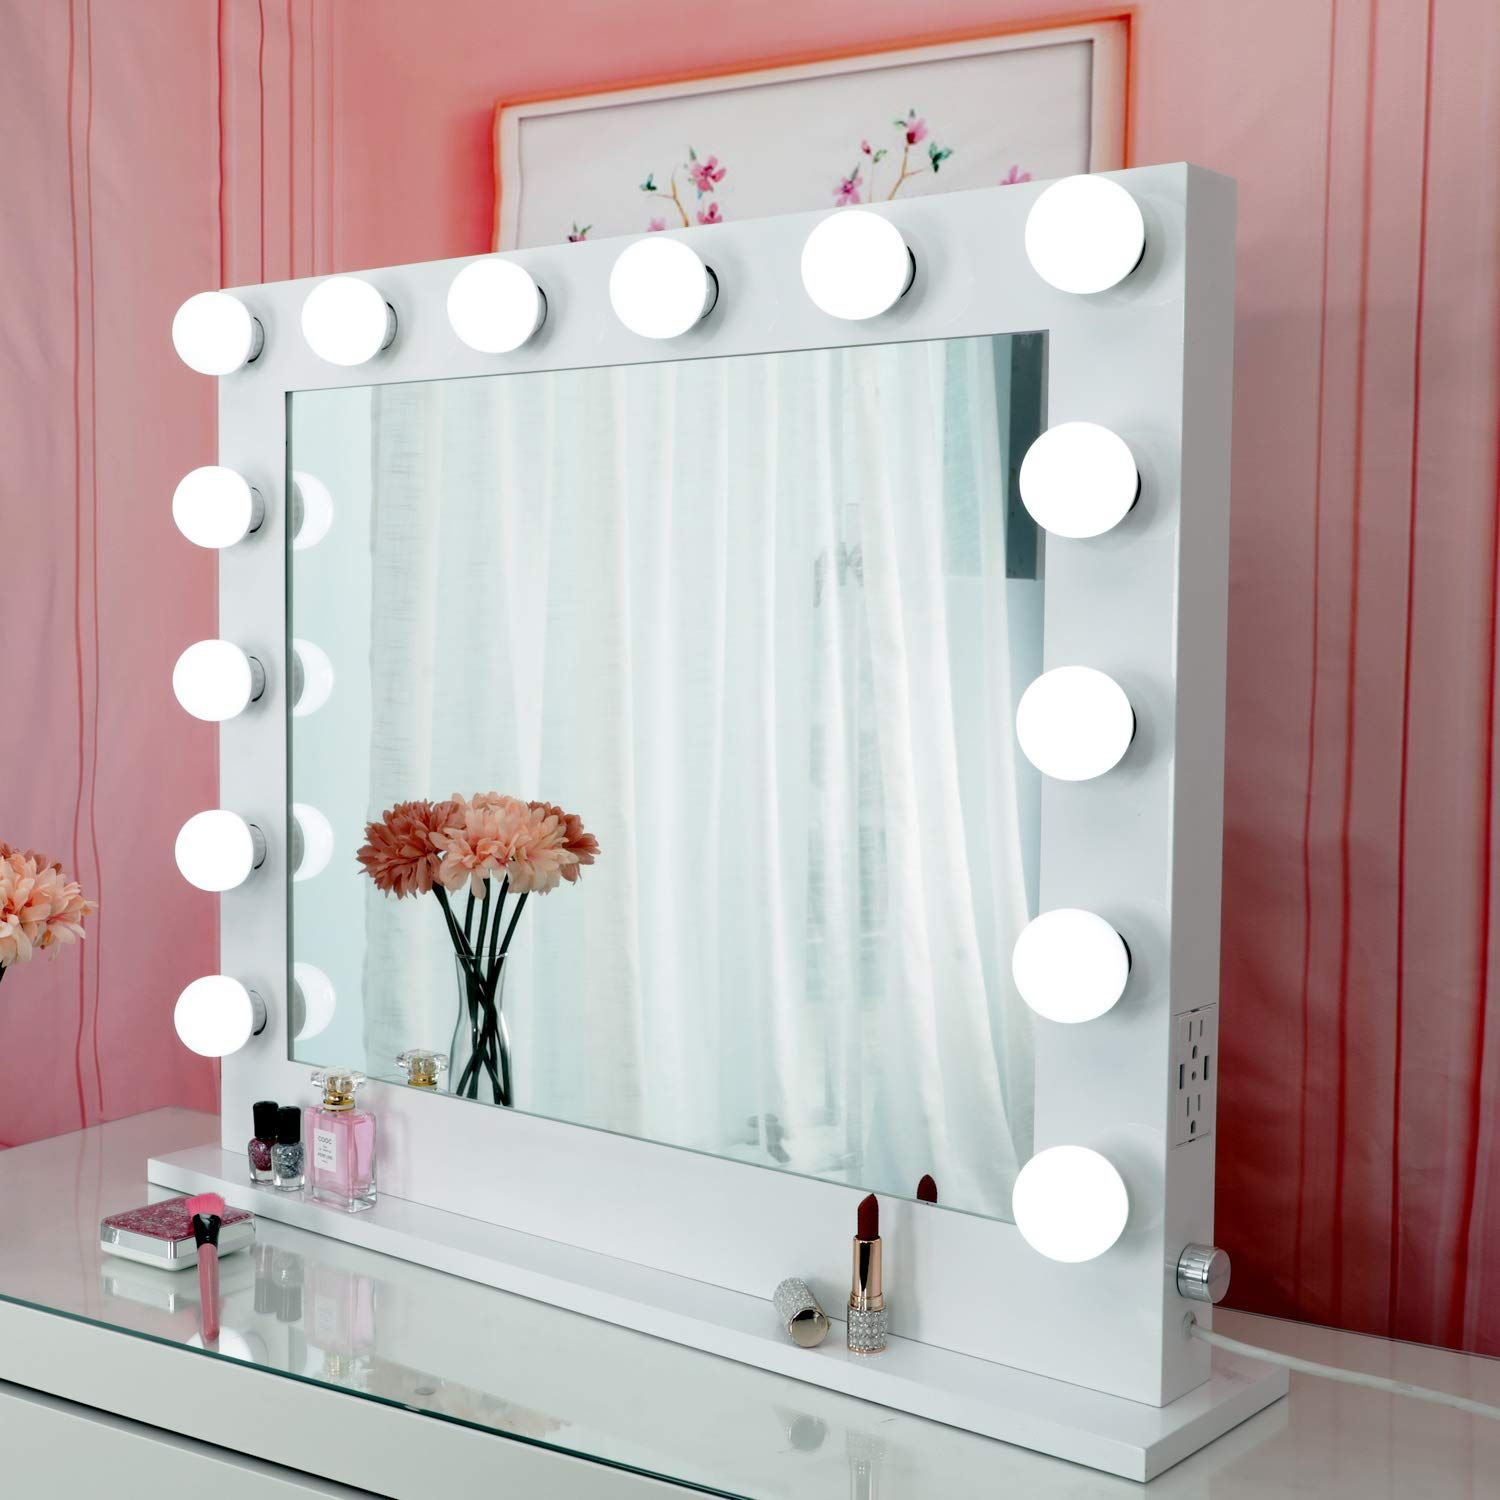 Large Makeup Vanity Mirror with Lights, Professional Light